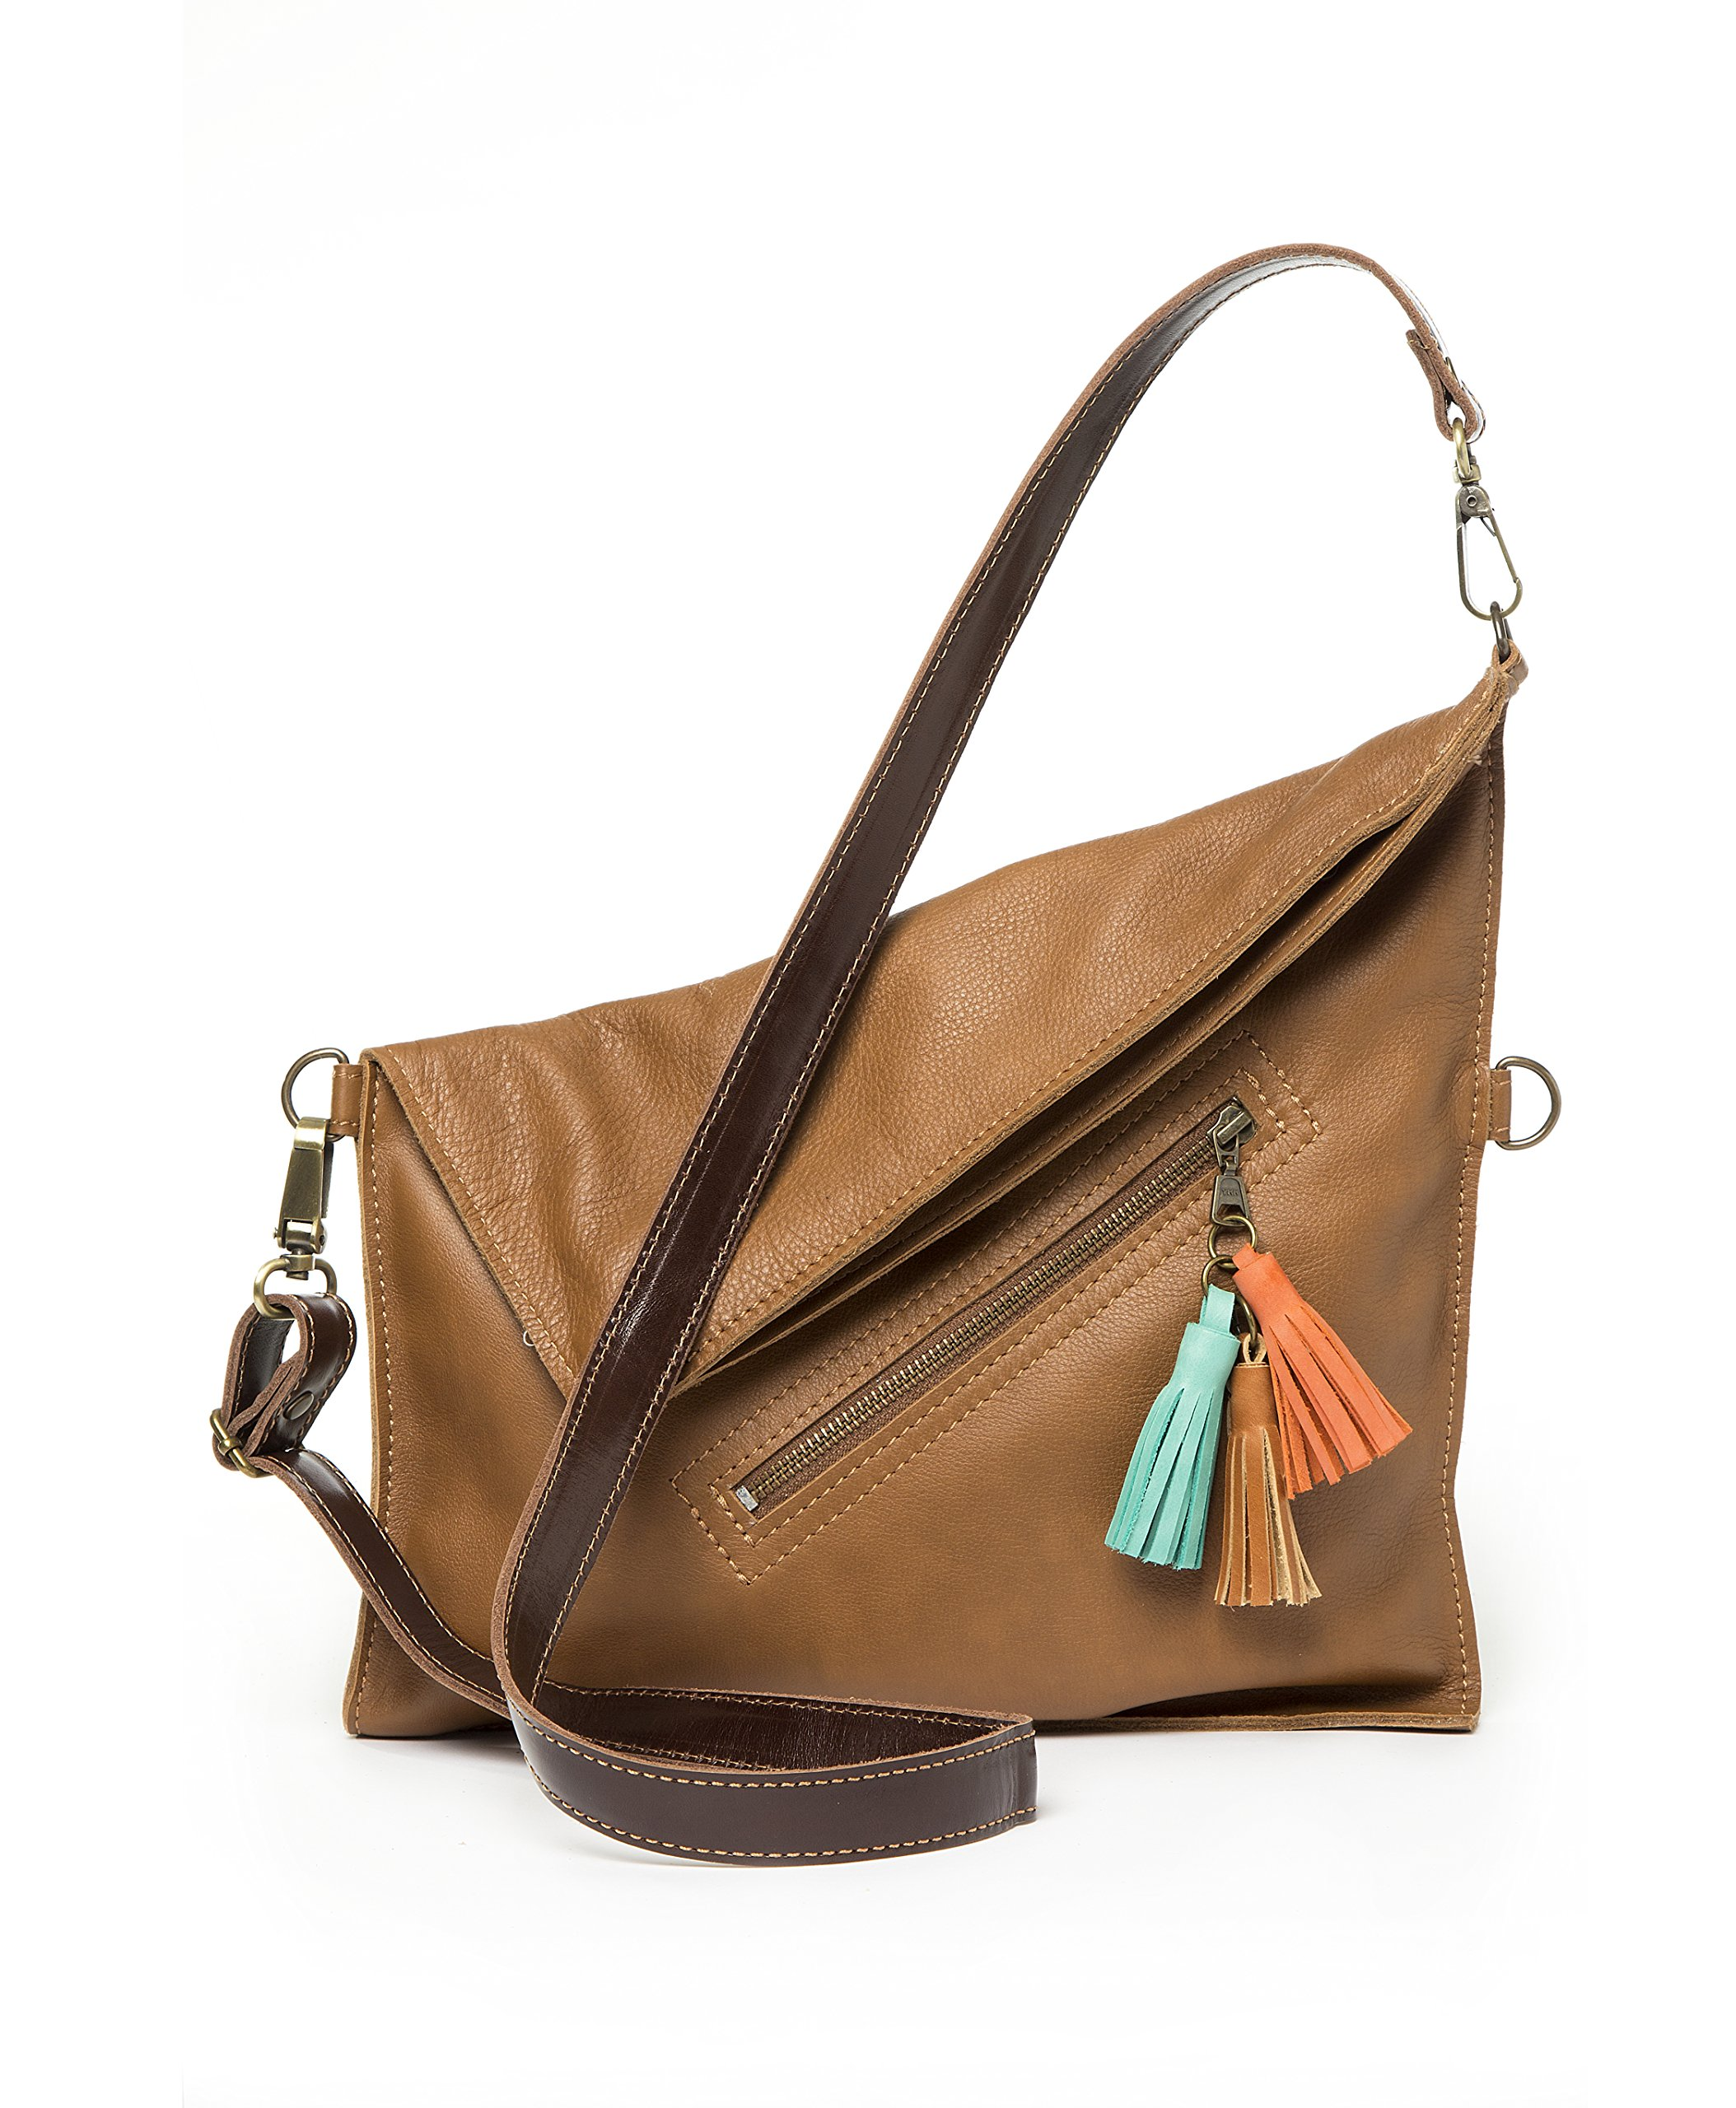 Soft leather crossbody bag | Fold over purse | Practical for woman and girls (Tan)